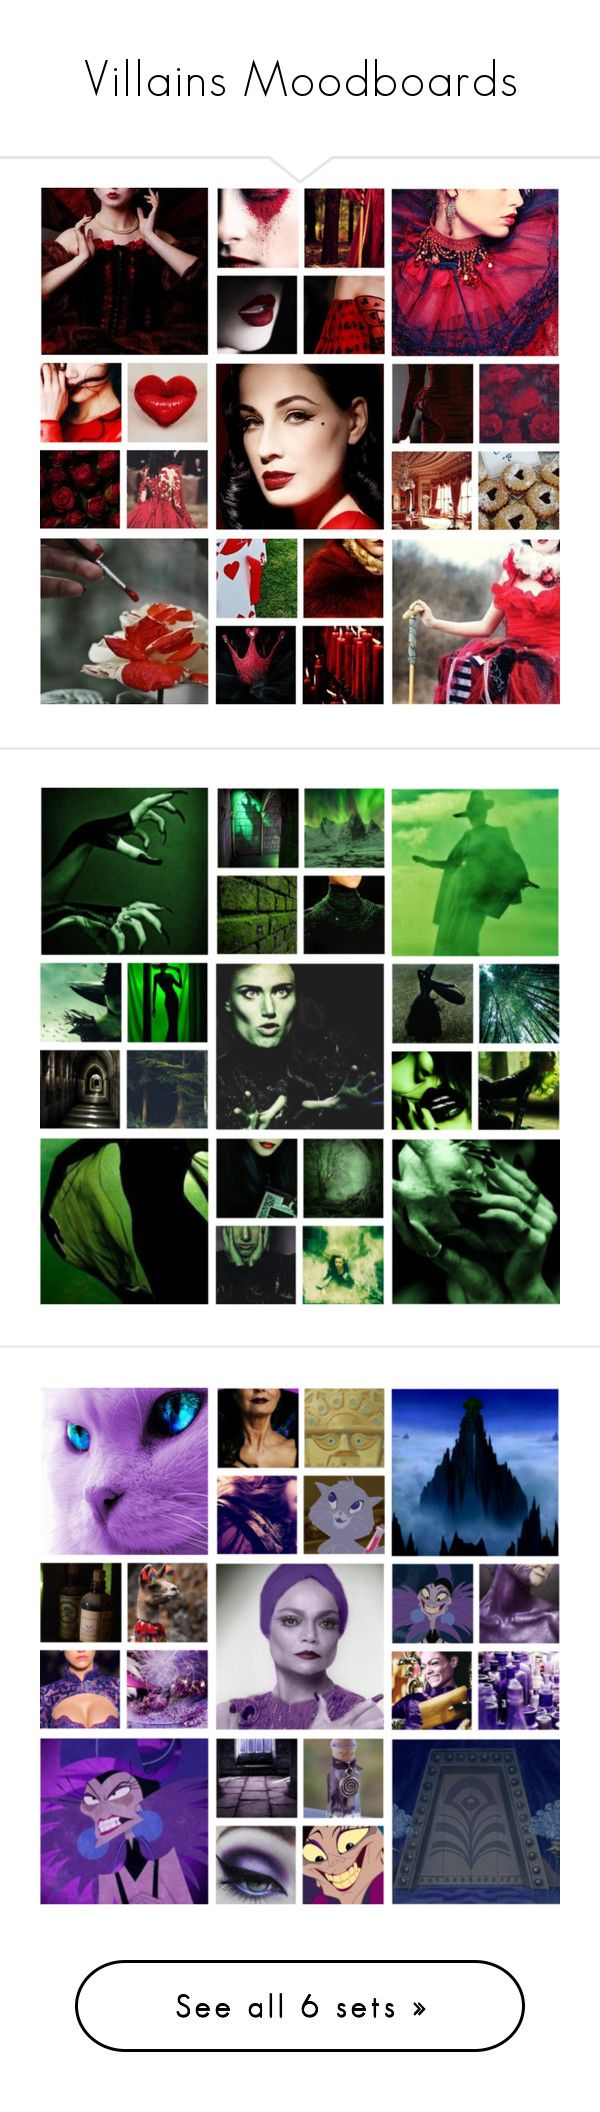 """Villains Moodboards"" by sugarpixielh ❤ liked on Polyvore featuring art, disney, dreamcast, DitaVonTeese, DisneyVillians, QueenOfHearts, yzma, maleficent, ouat and evilqueen"